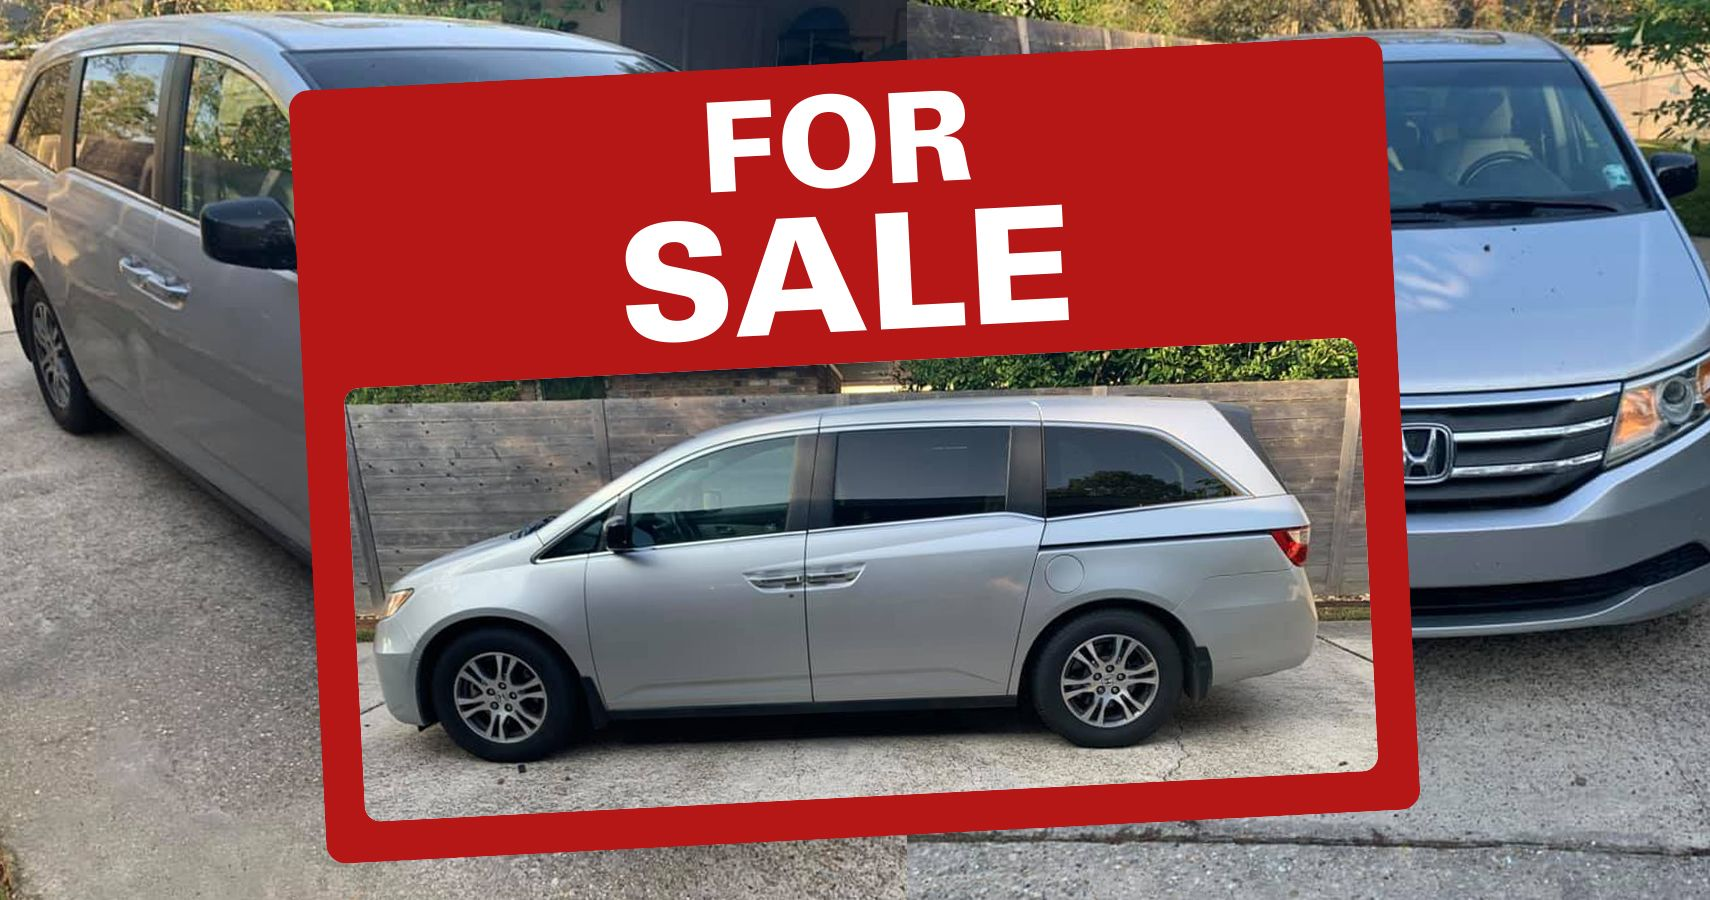 Dad Creates Hilarious Ad To Sell Van On Facebook | Moms.com